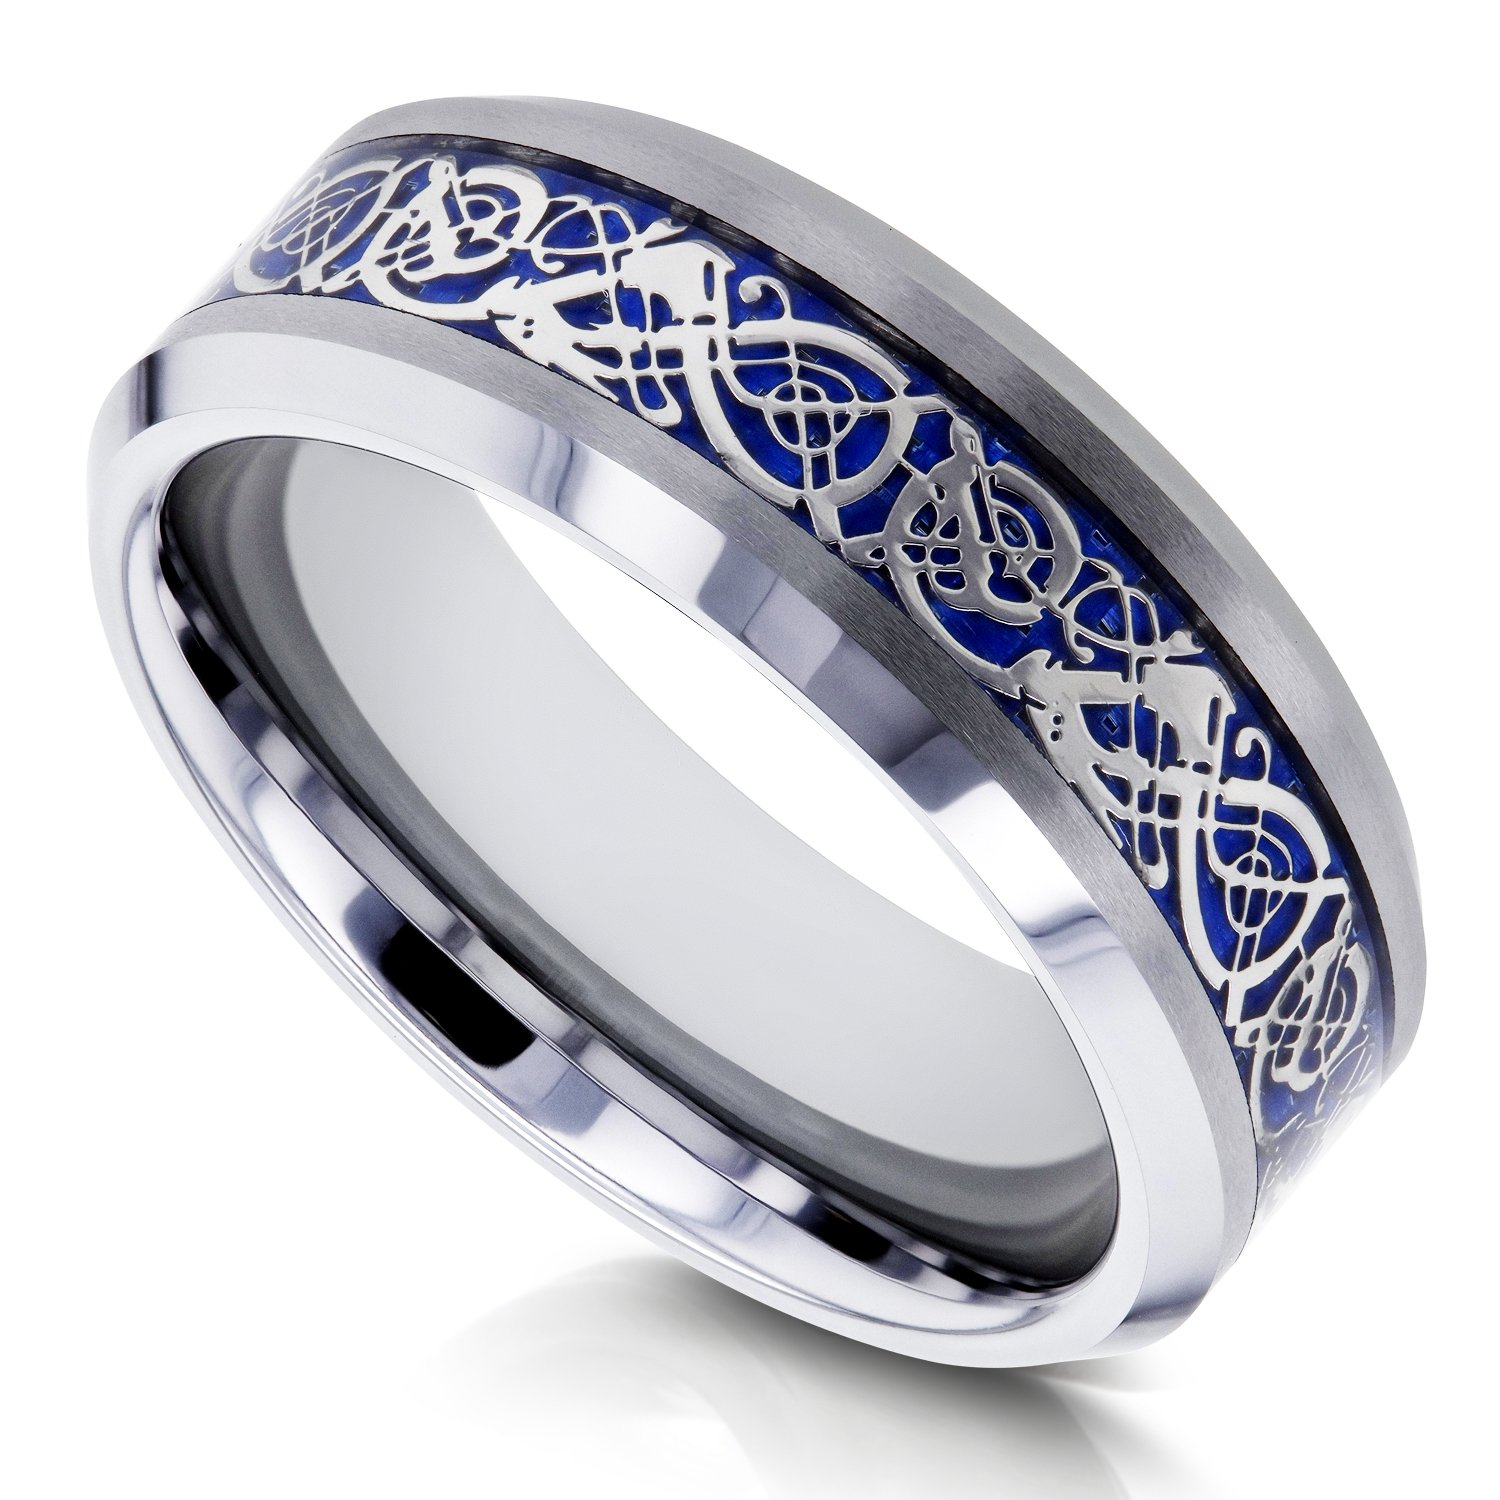 8mm Celtic Dragon High Polish Comfort Fit Mens Tungsten Carbide Ring - Size 10 by Kobelli